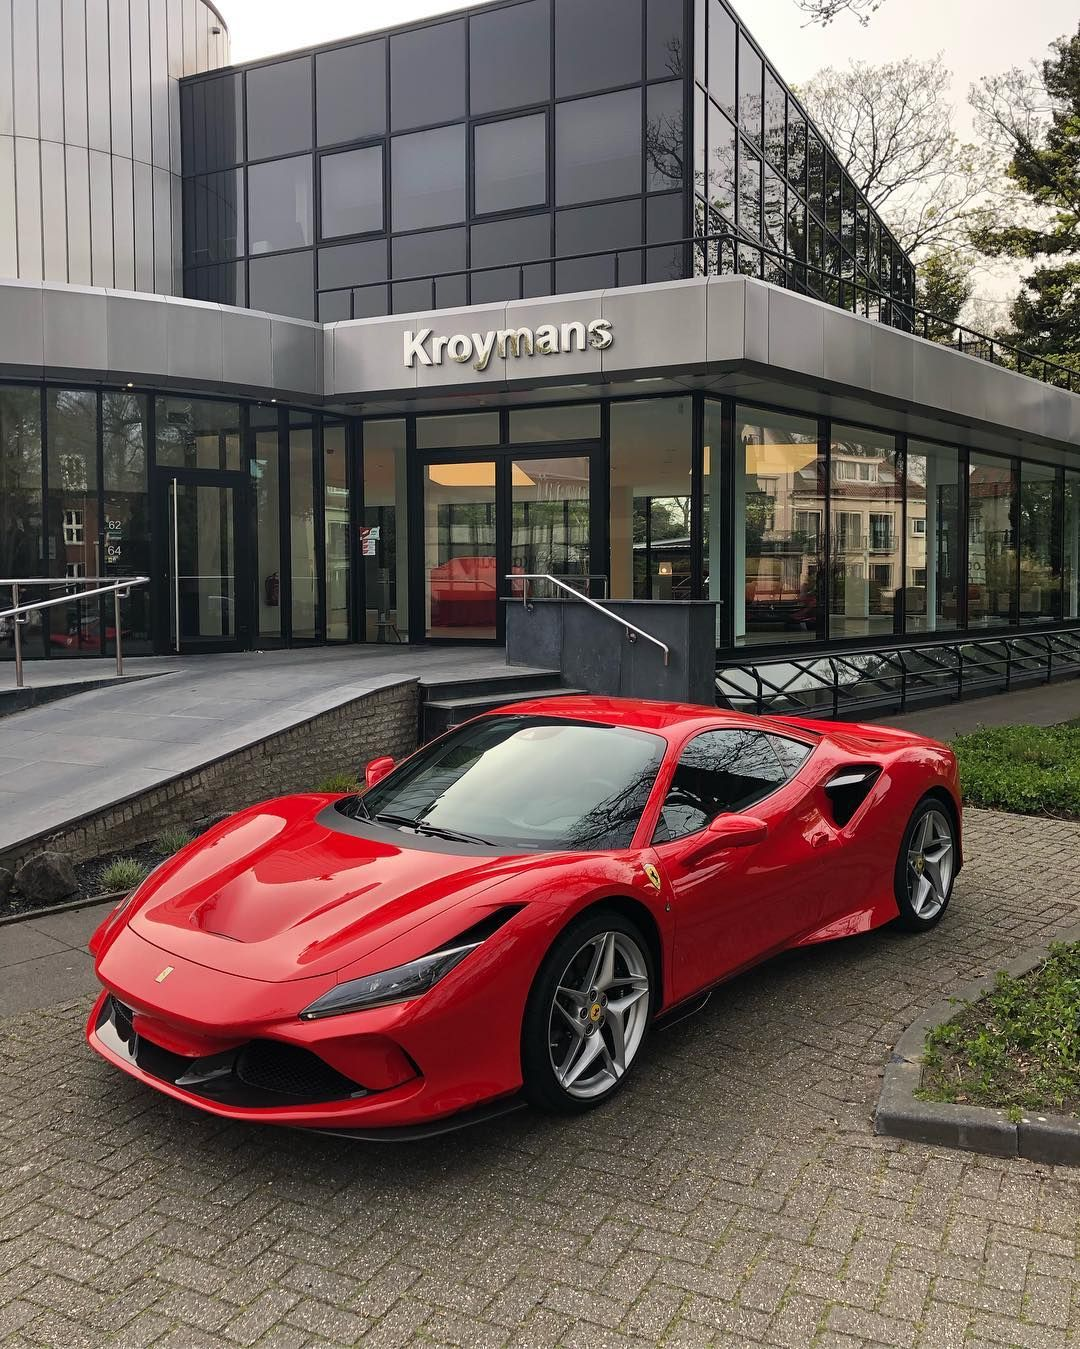 The Ferrari F8 Tributo Has Arrived Ferrari F8tributo Kroymans